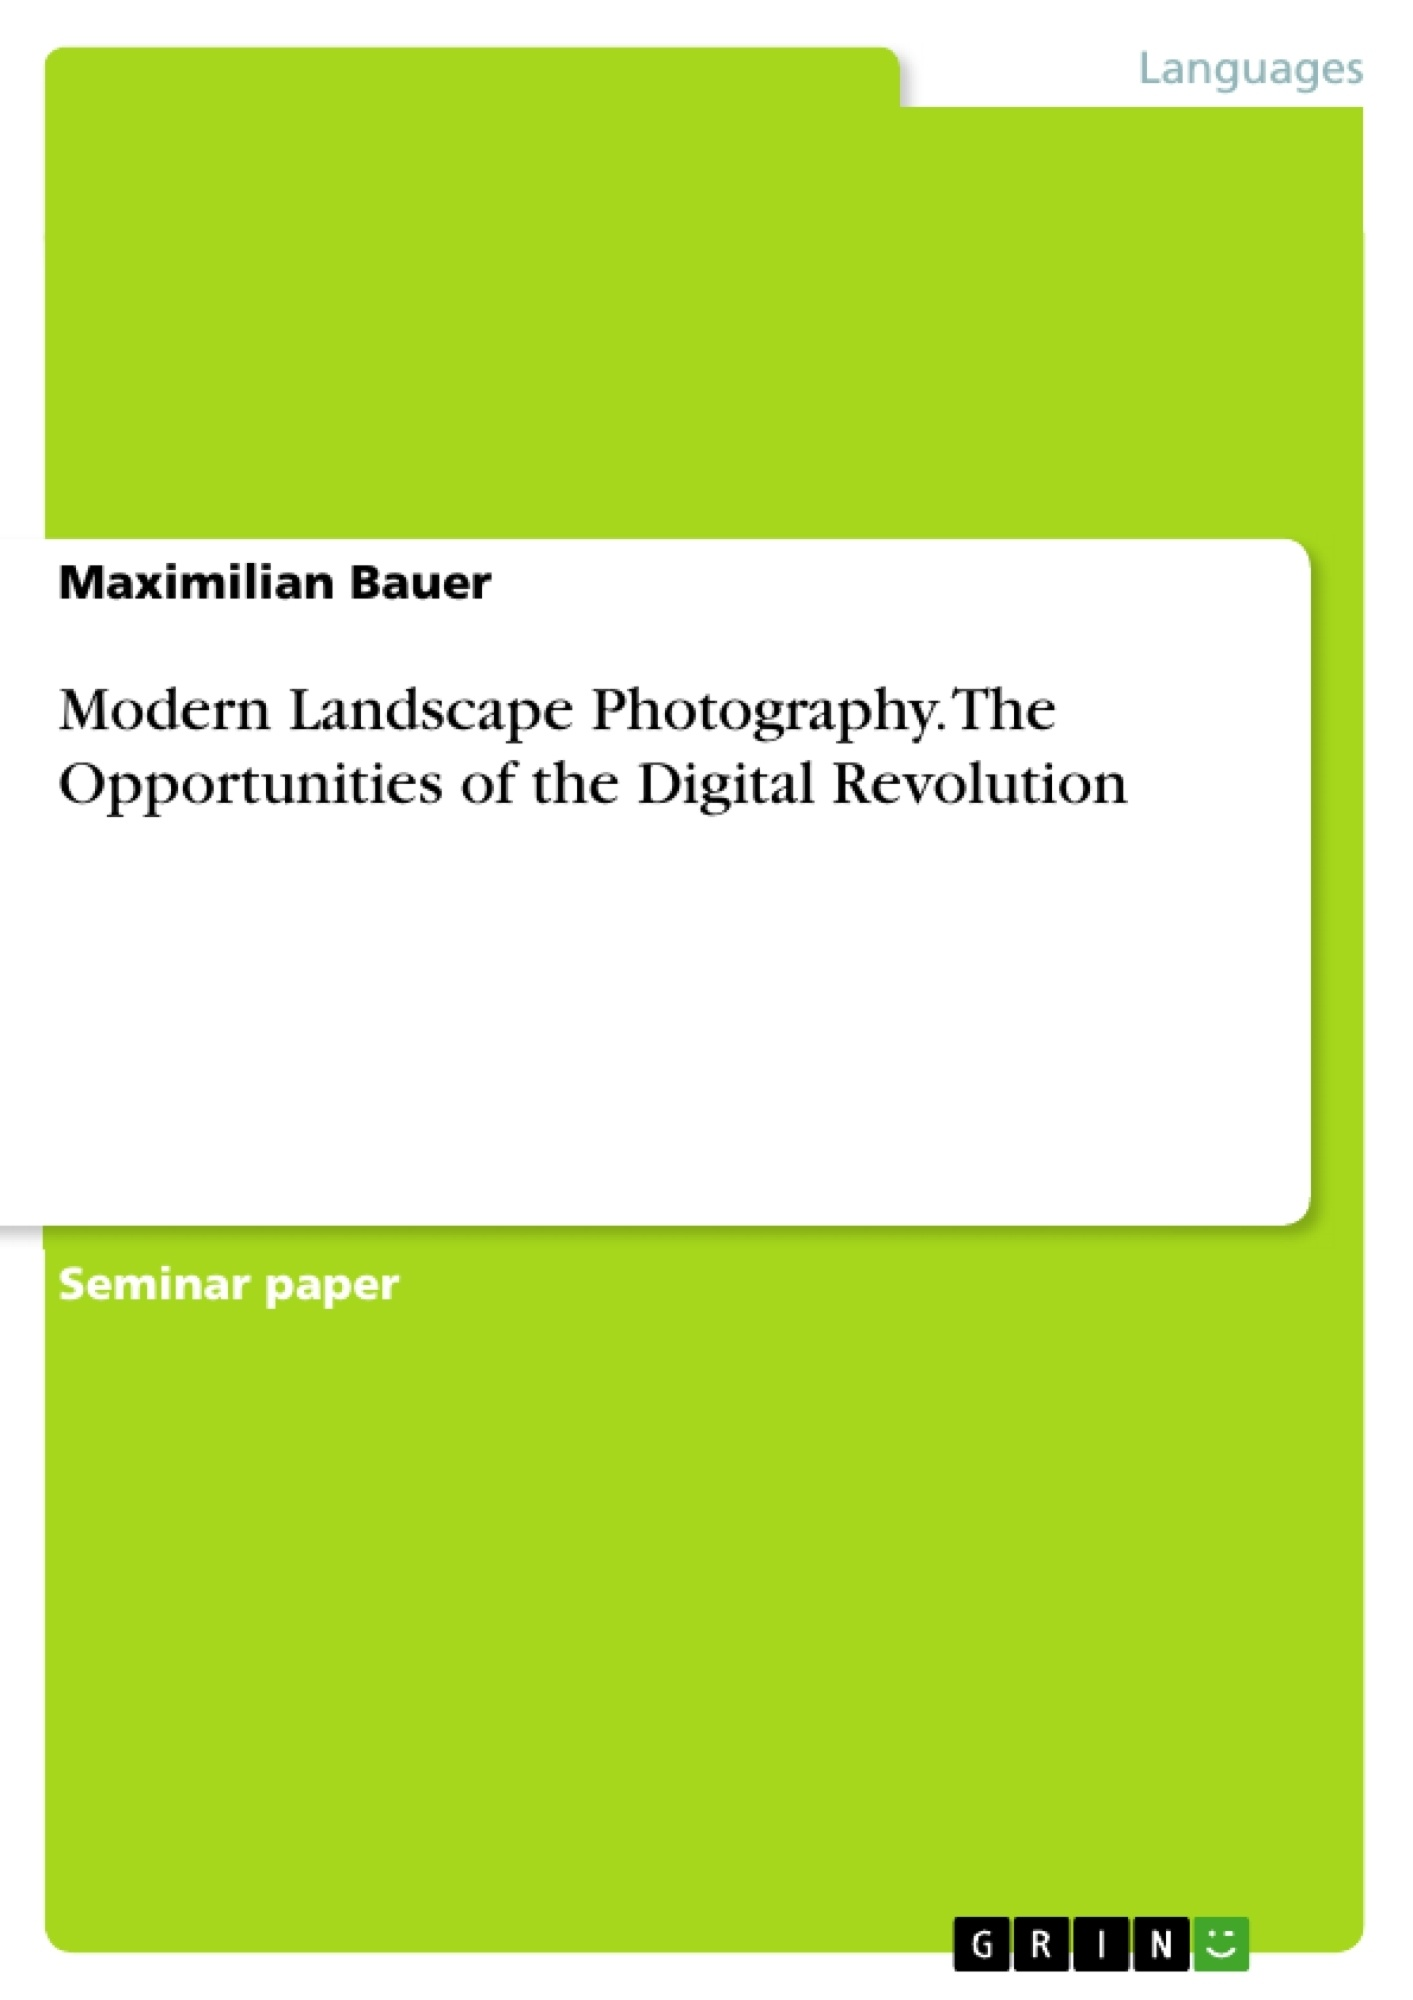 Title: Modern Landscape Photography. The Opportunities of the Digital Revolution